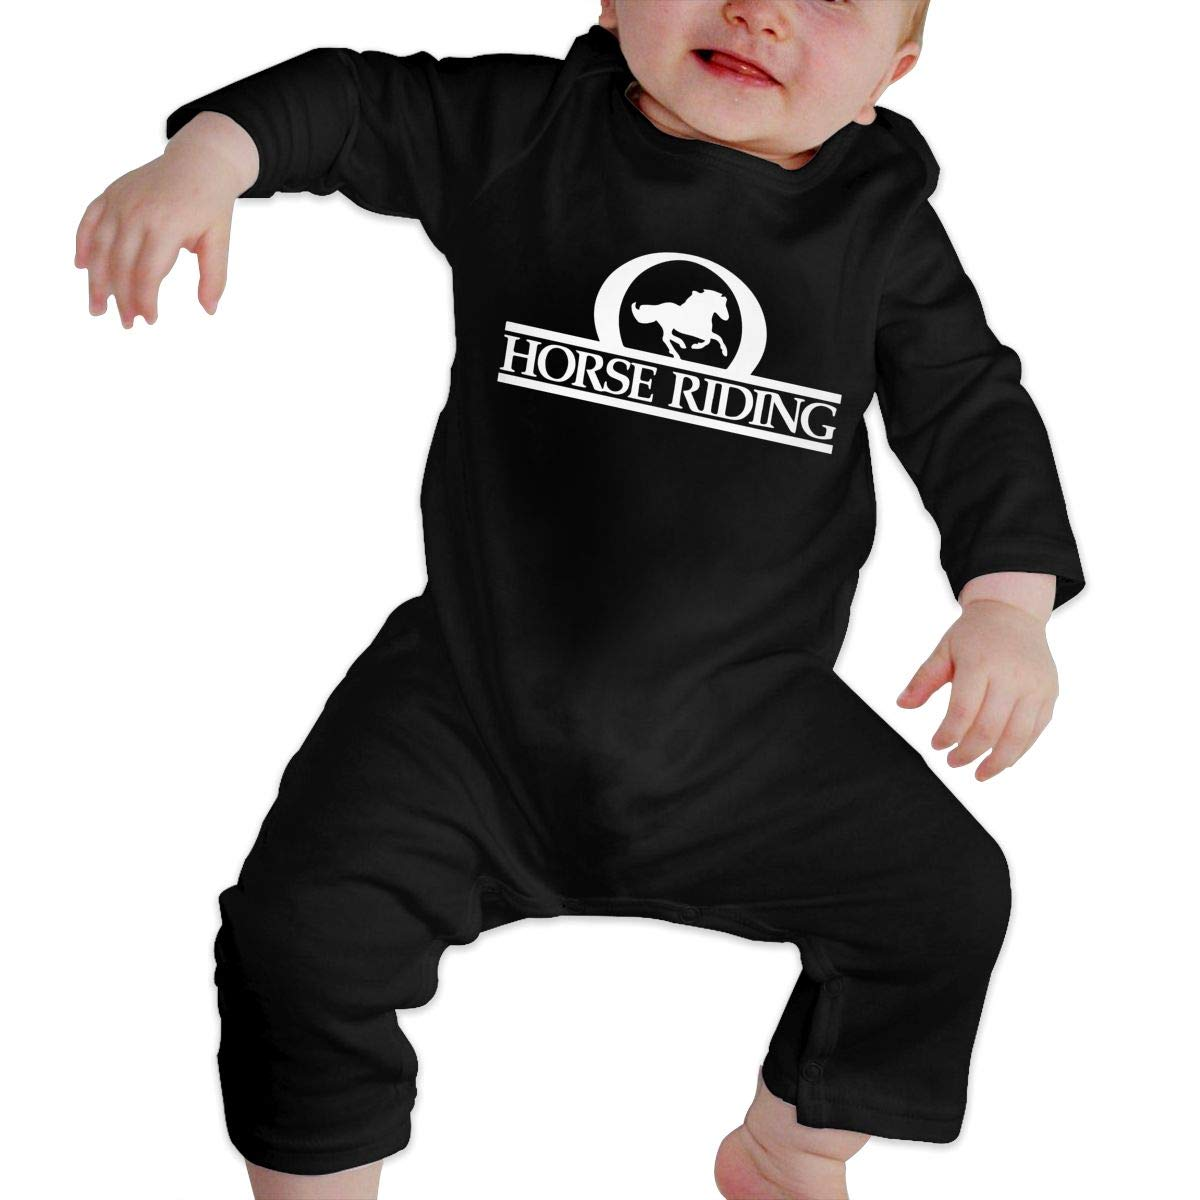 Q64 Toddler Round Collar Horse Riding Long Sleeve Bodysuits 100/% Cotton Suit 6-24 Months